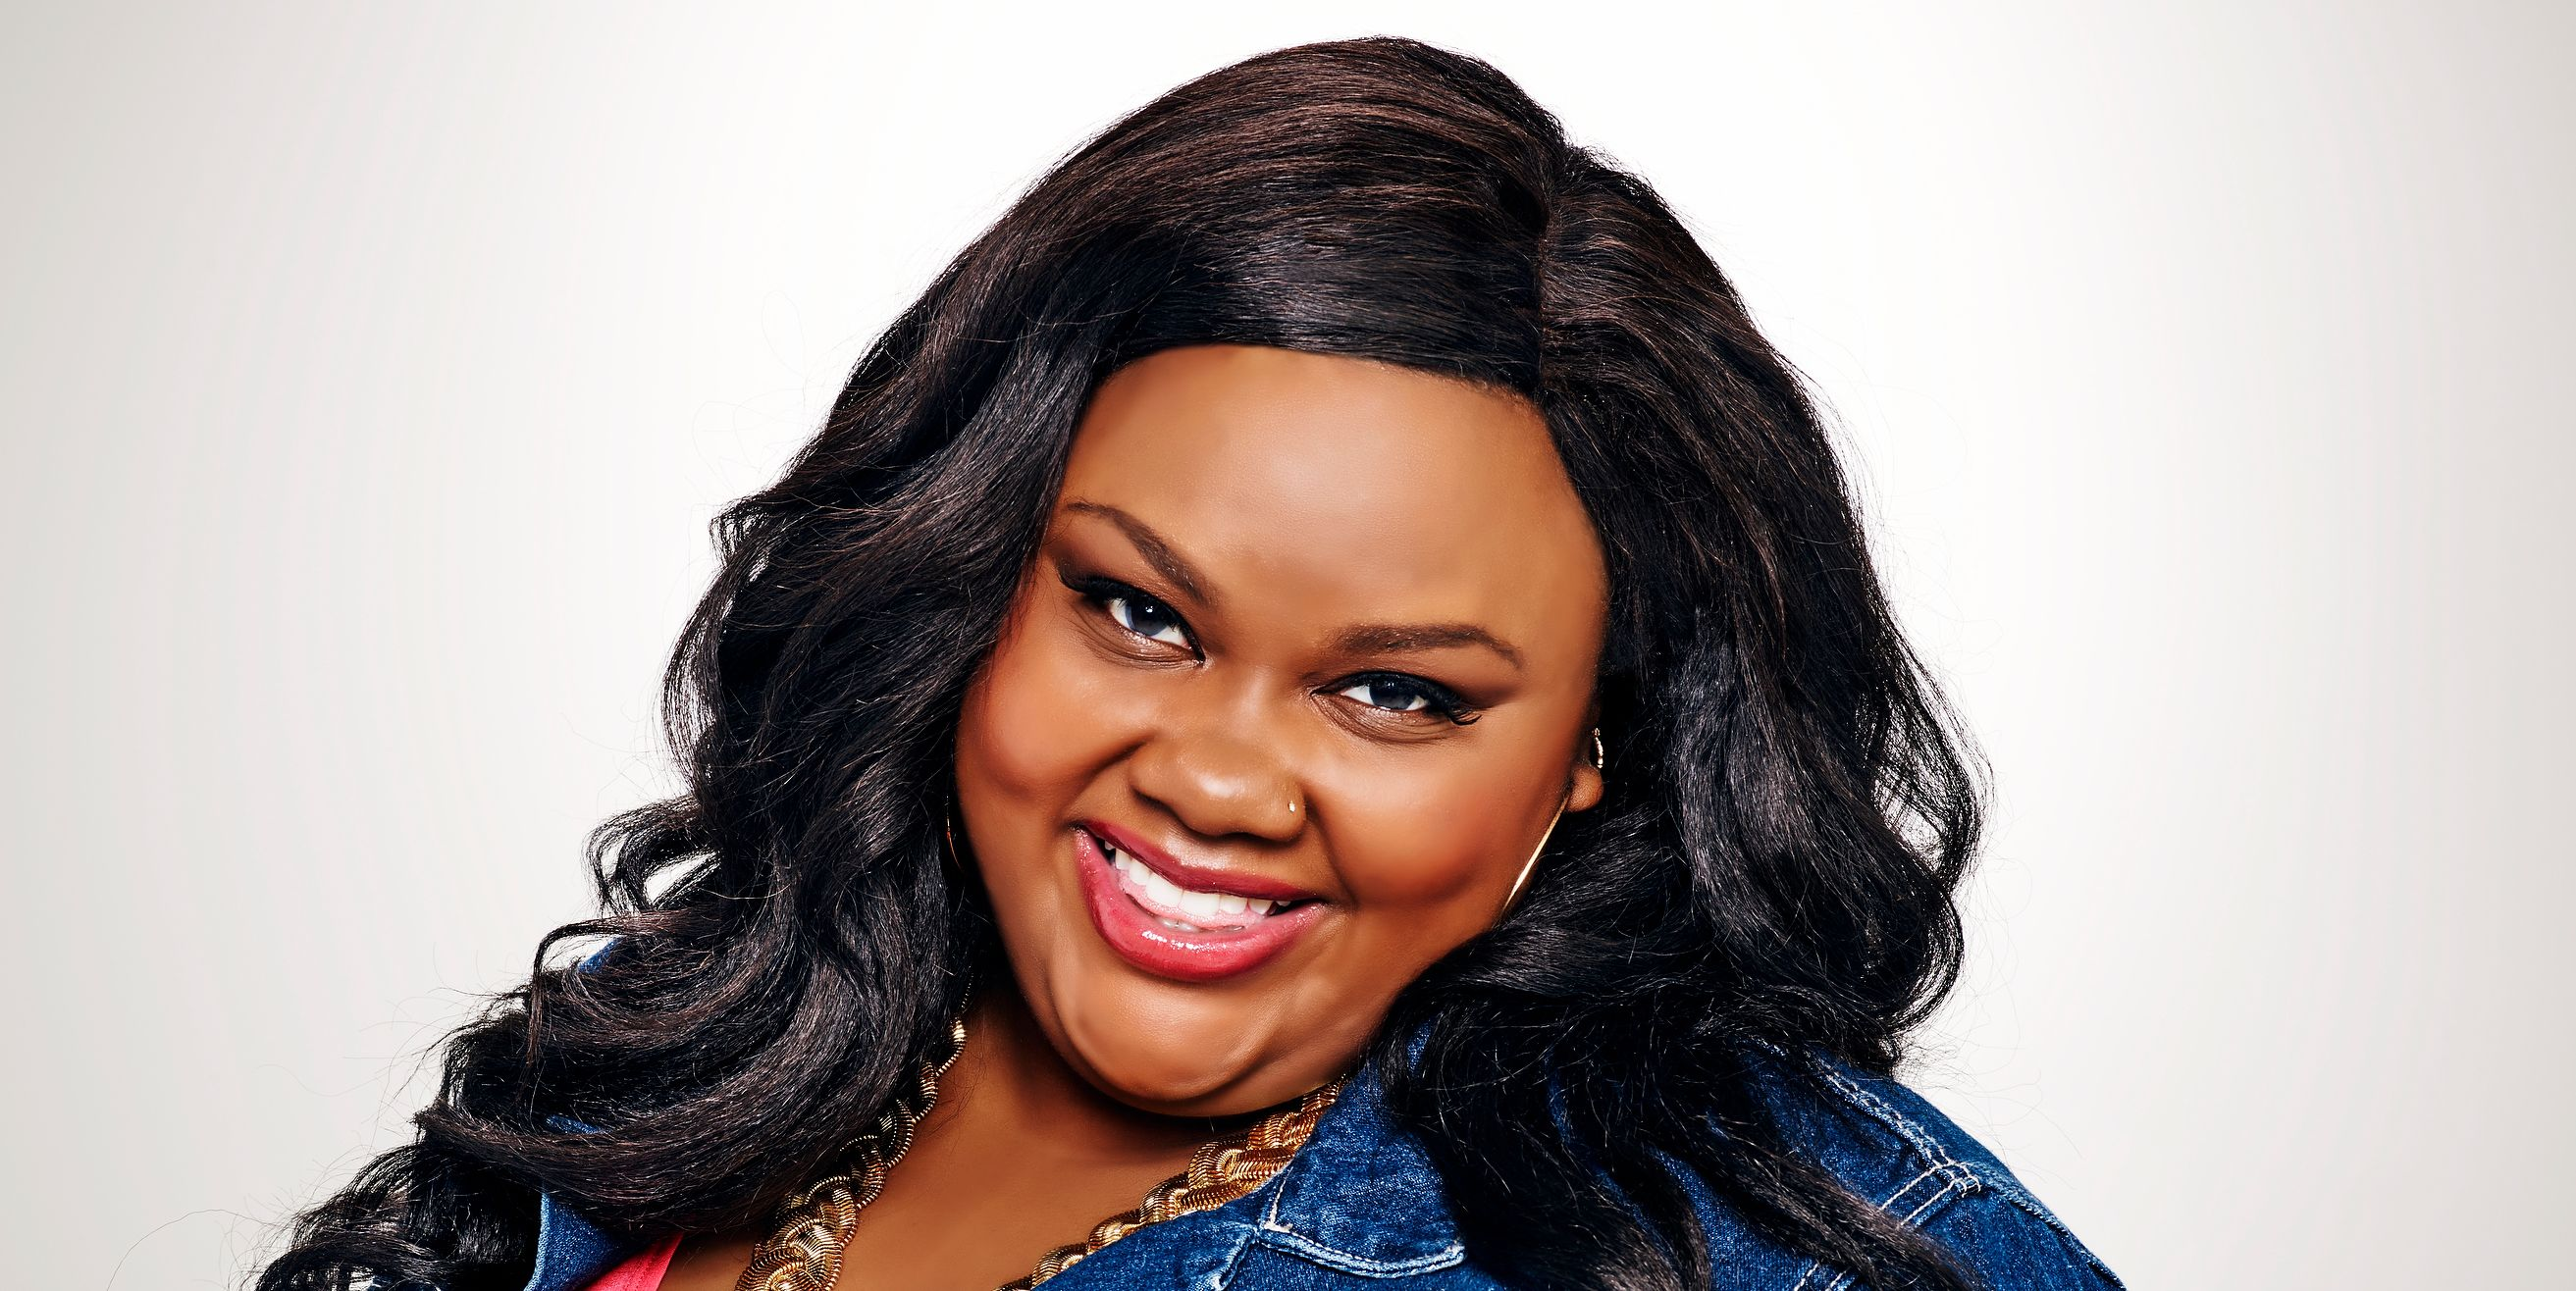 Comedian Nicole Byer Explains How the Beauty Industry Could Still Be More Inclusive